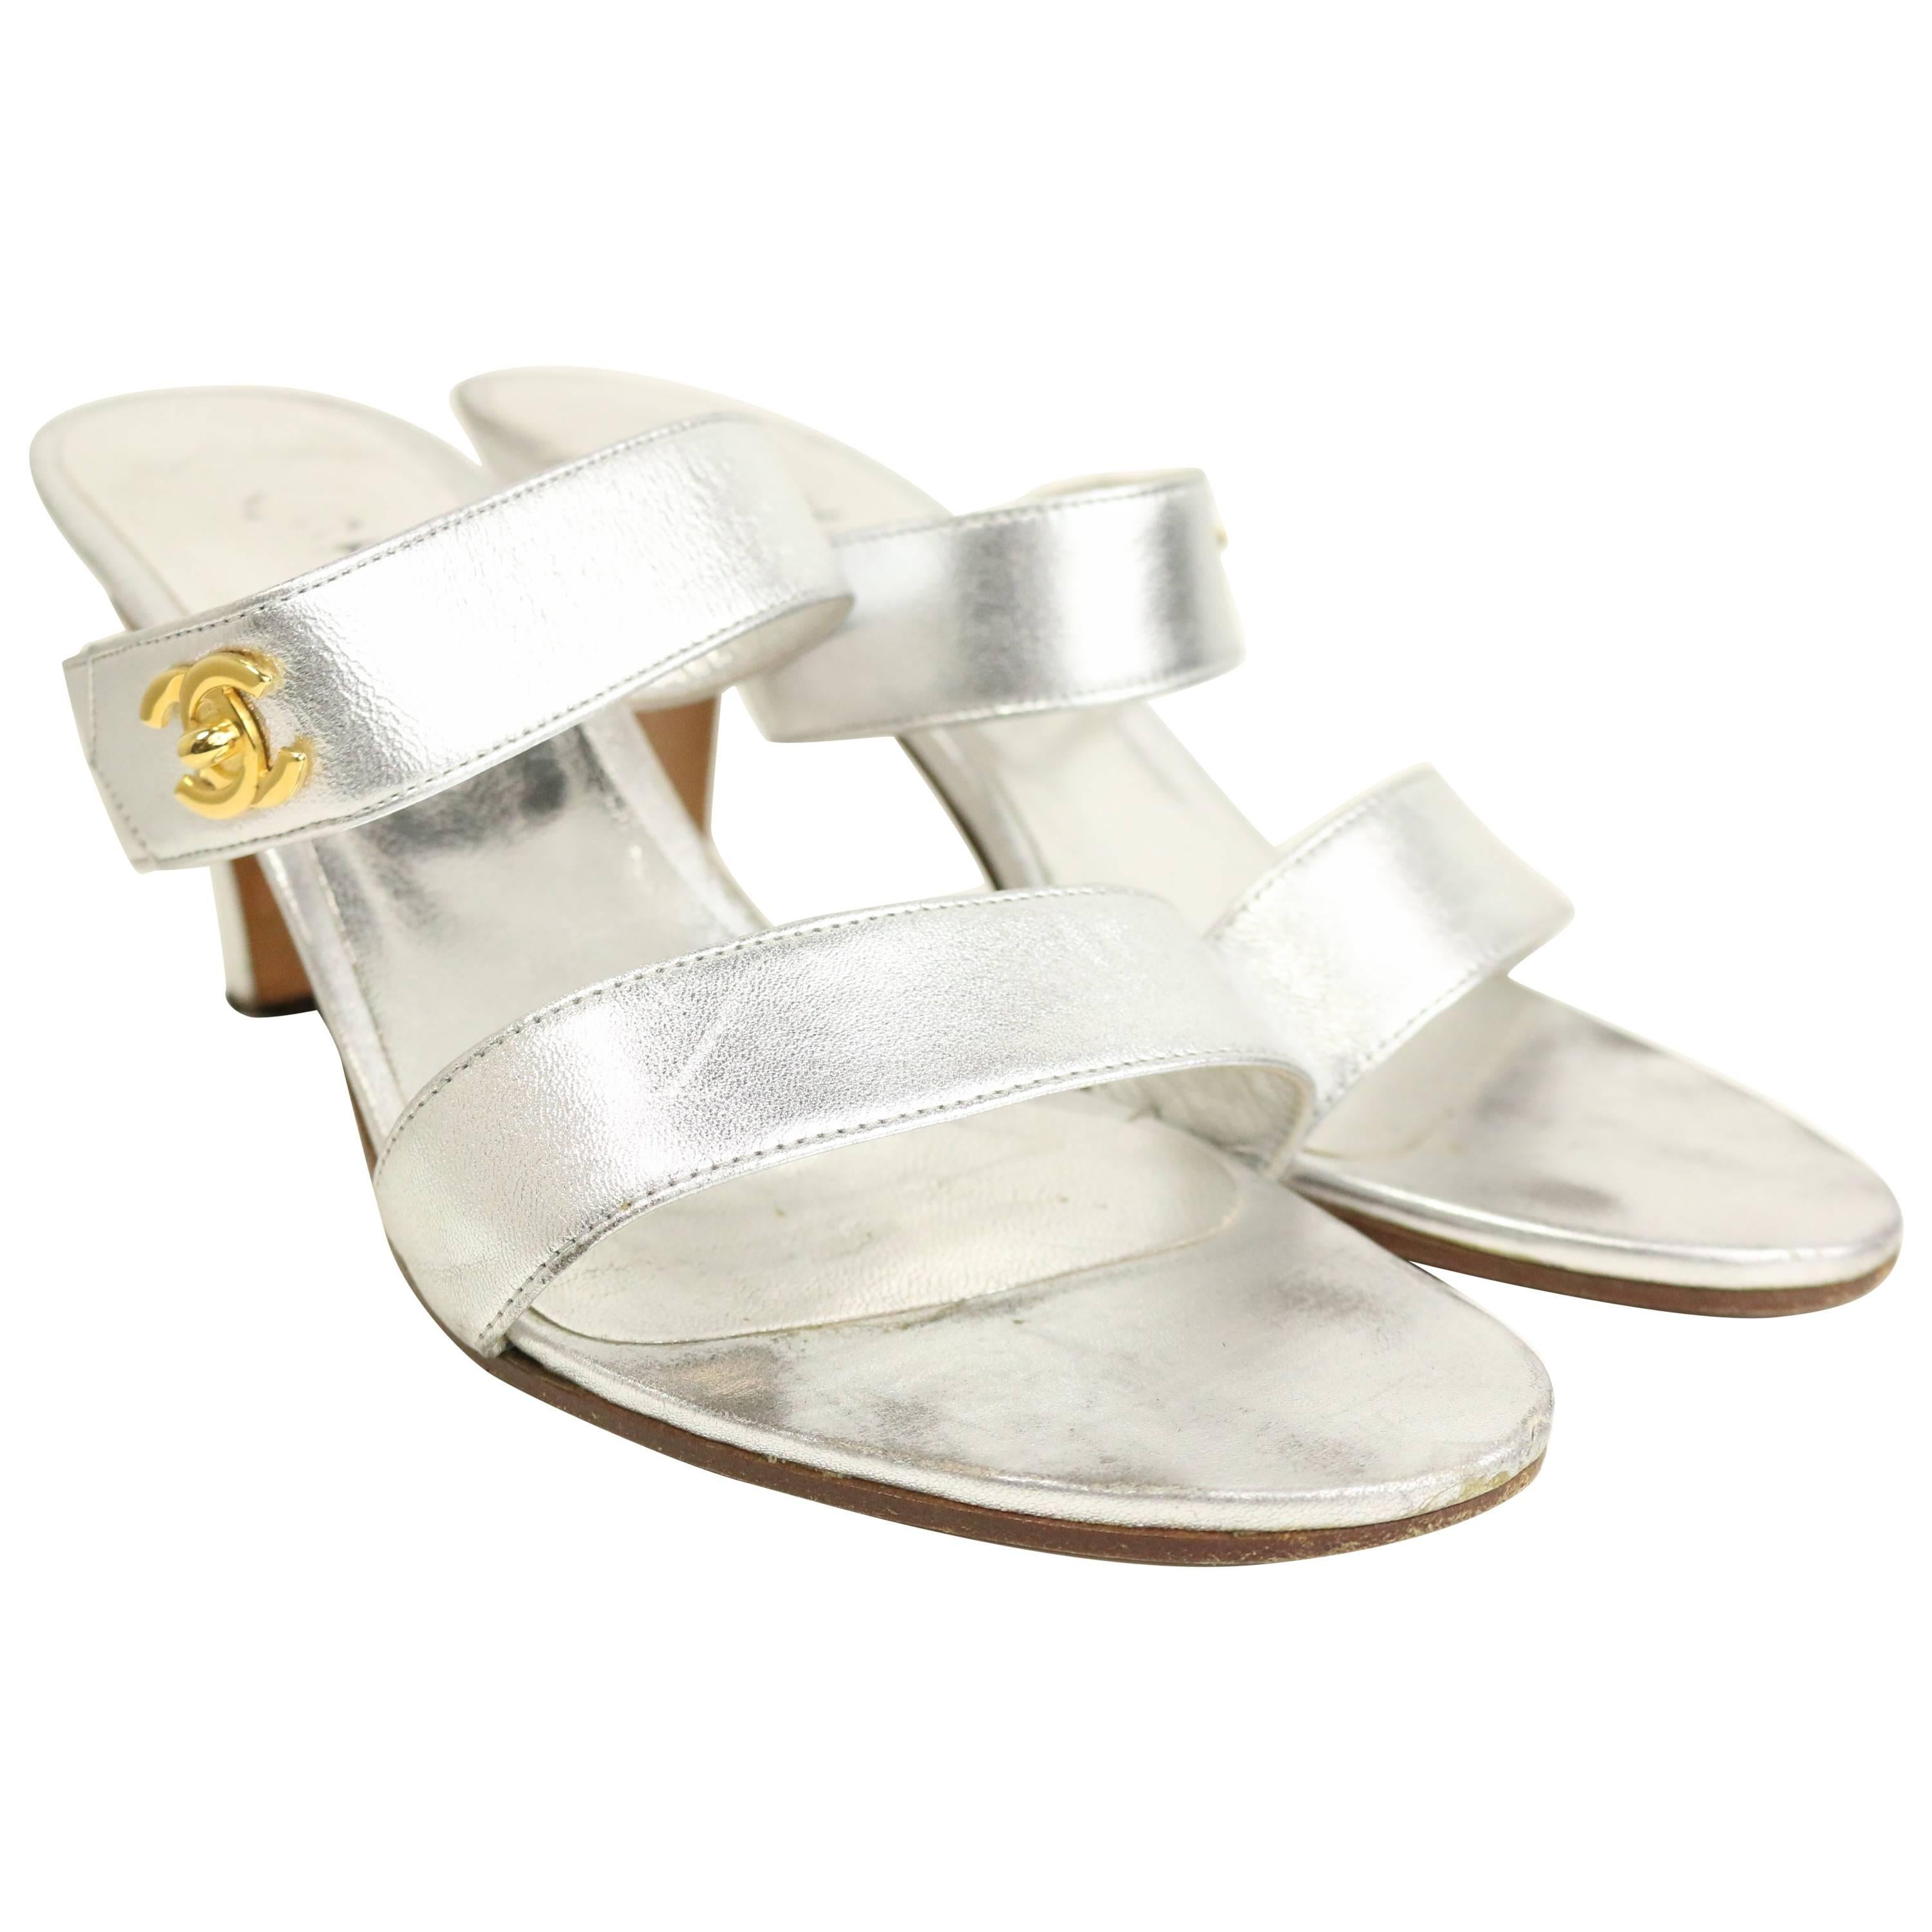 Chanel Silver Metallic Leather Straps Sandals Heels with Gold CC Logo